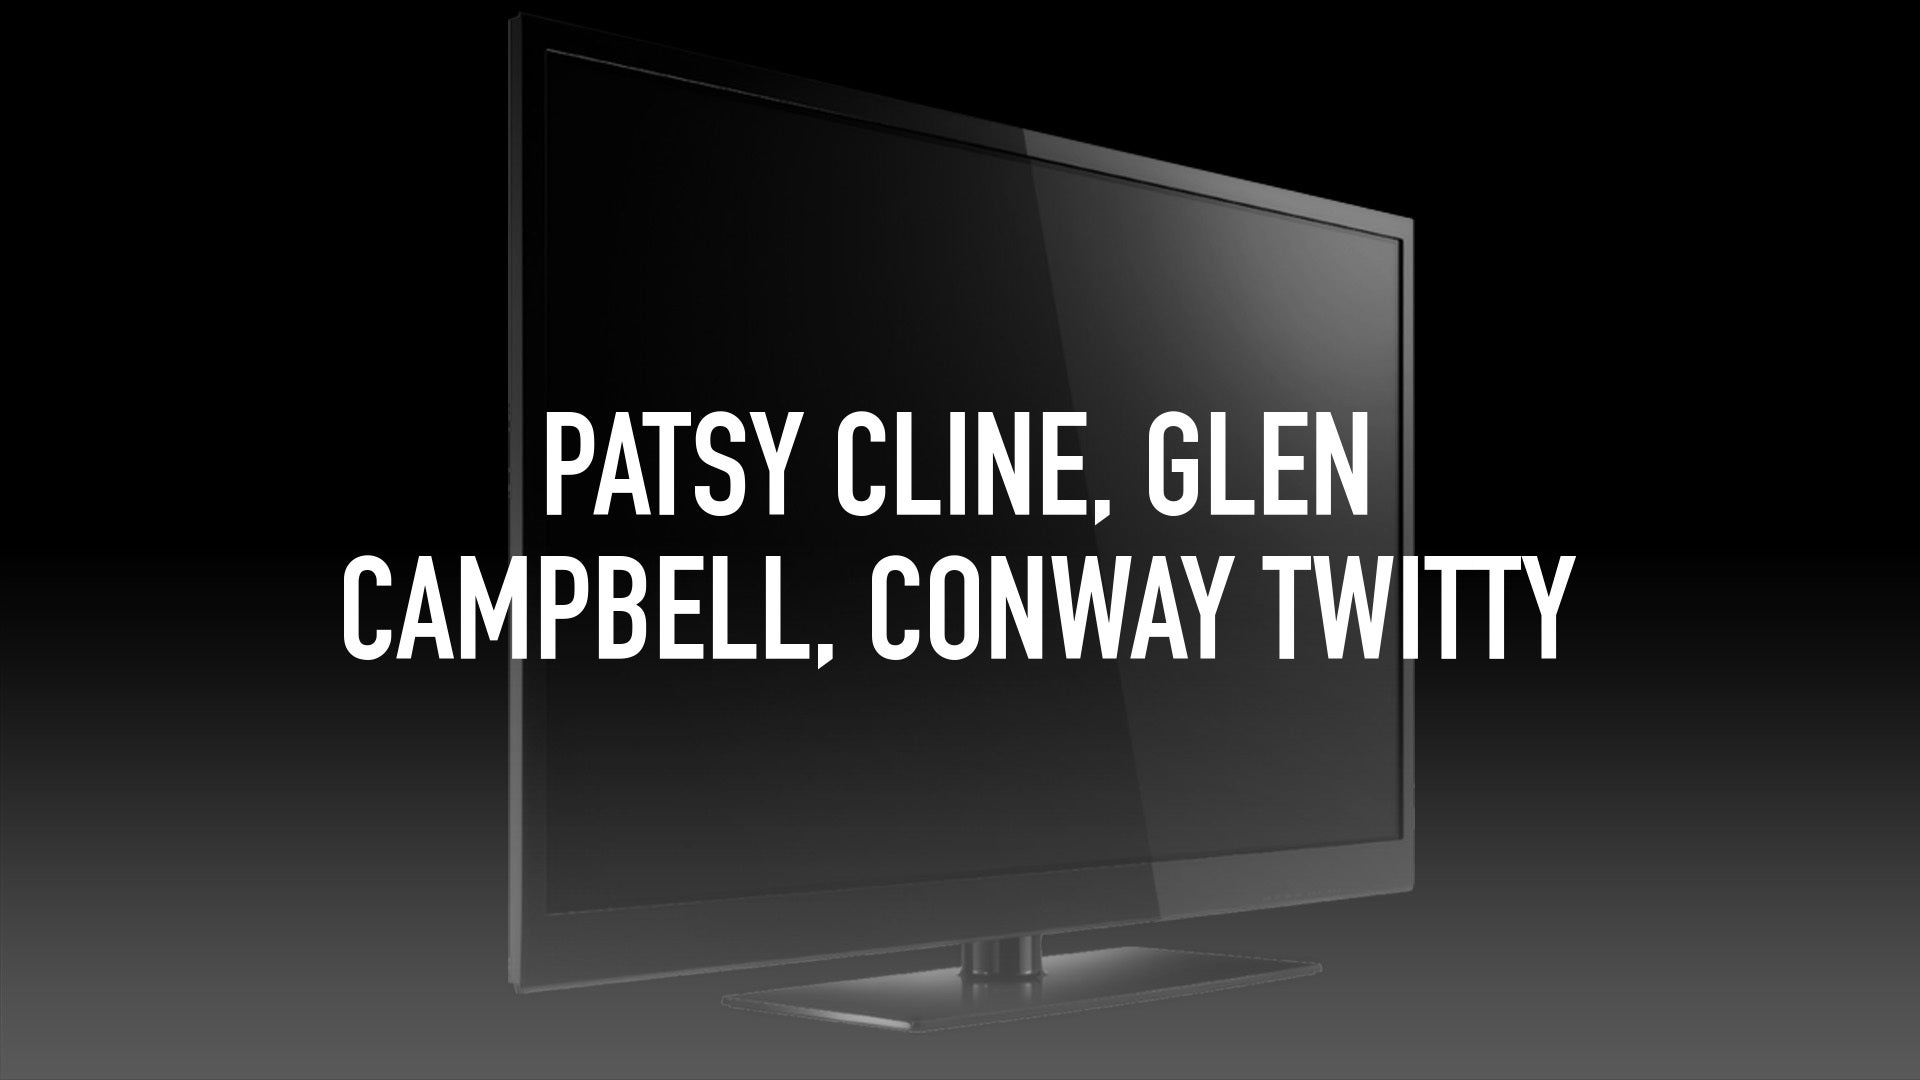 Patsy Cline, Glen Campbell, Conway Twitty